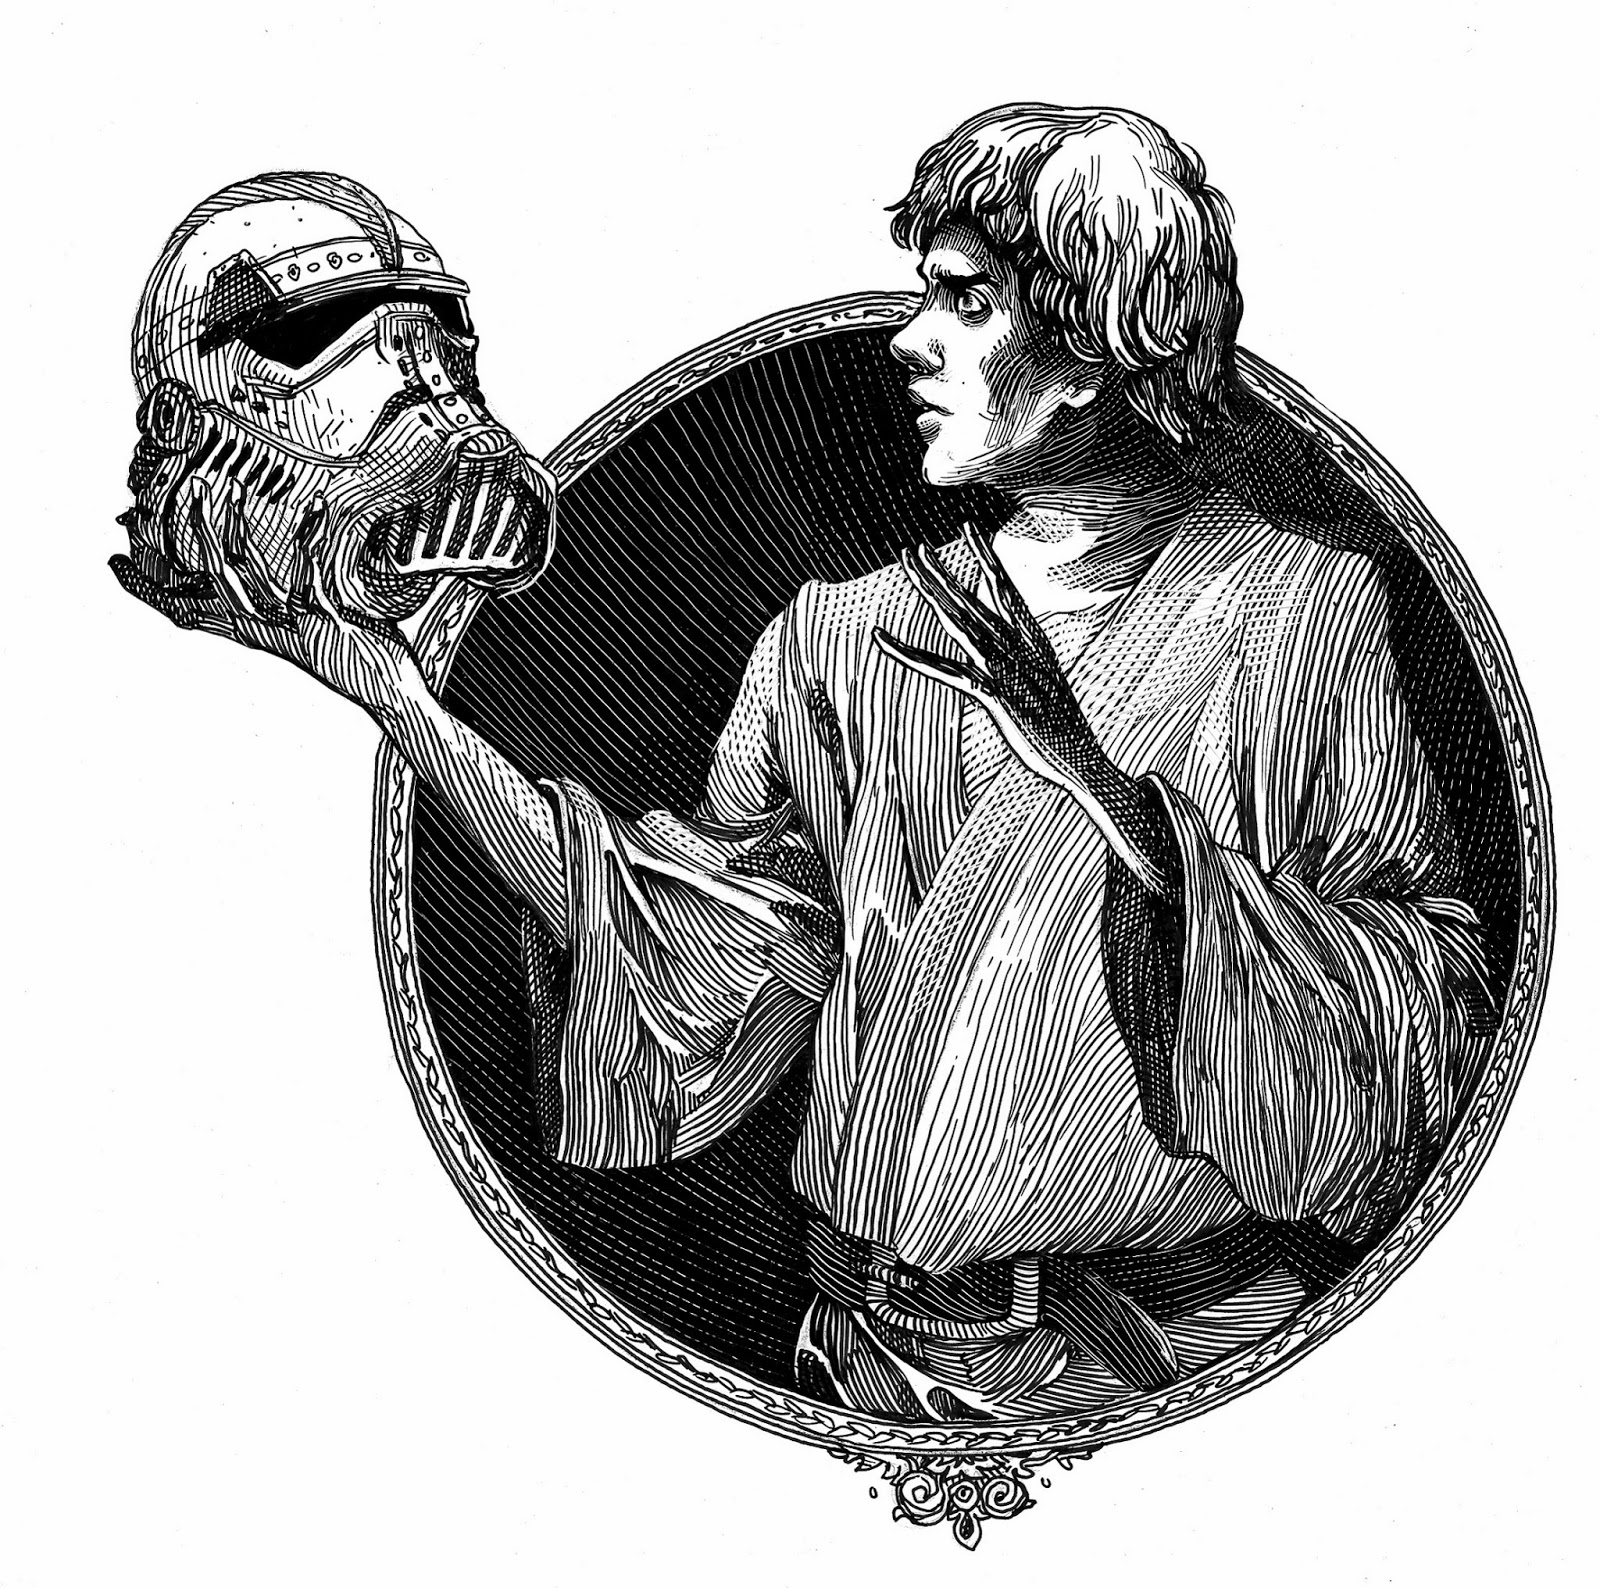 Luke Skywalker in Ian Doescher's William Shakespeare's Star Wars